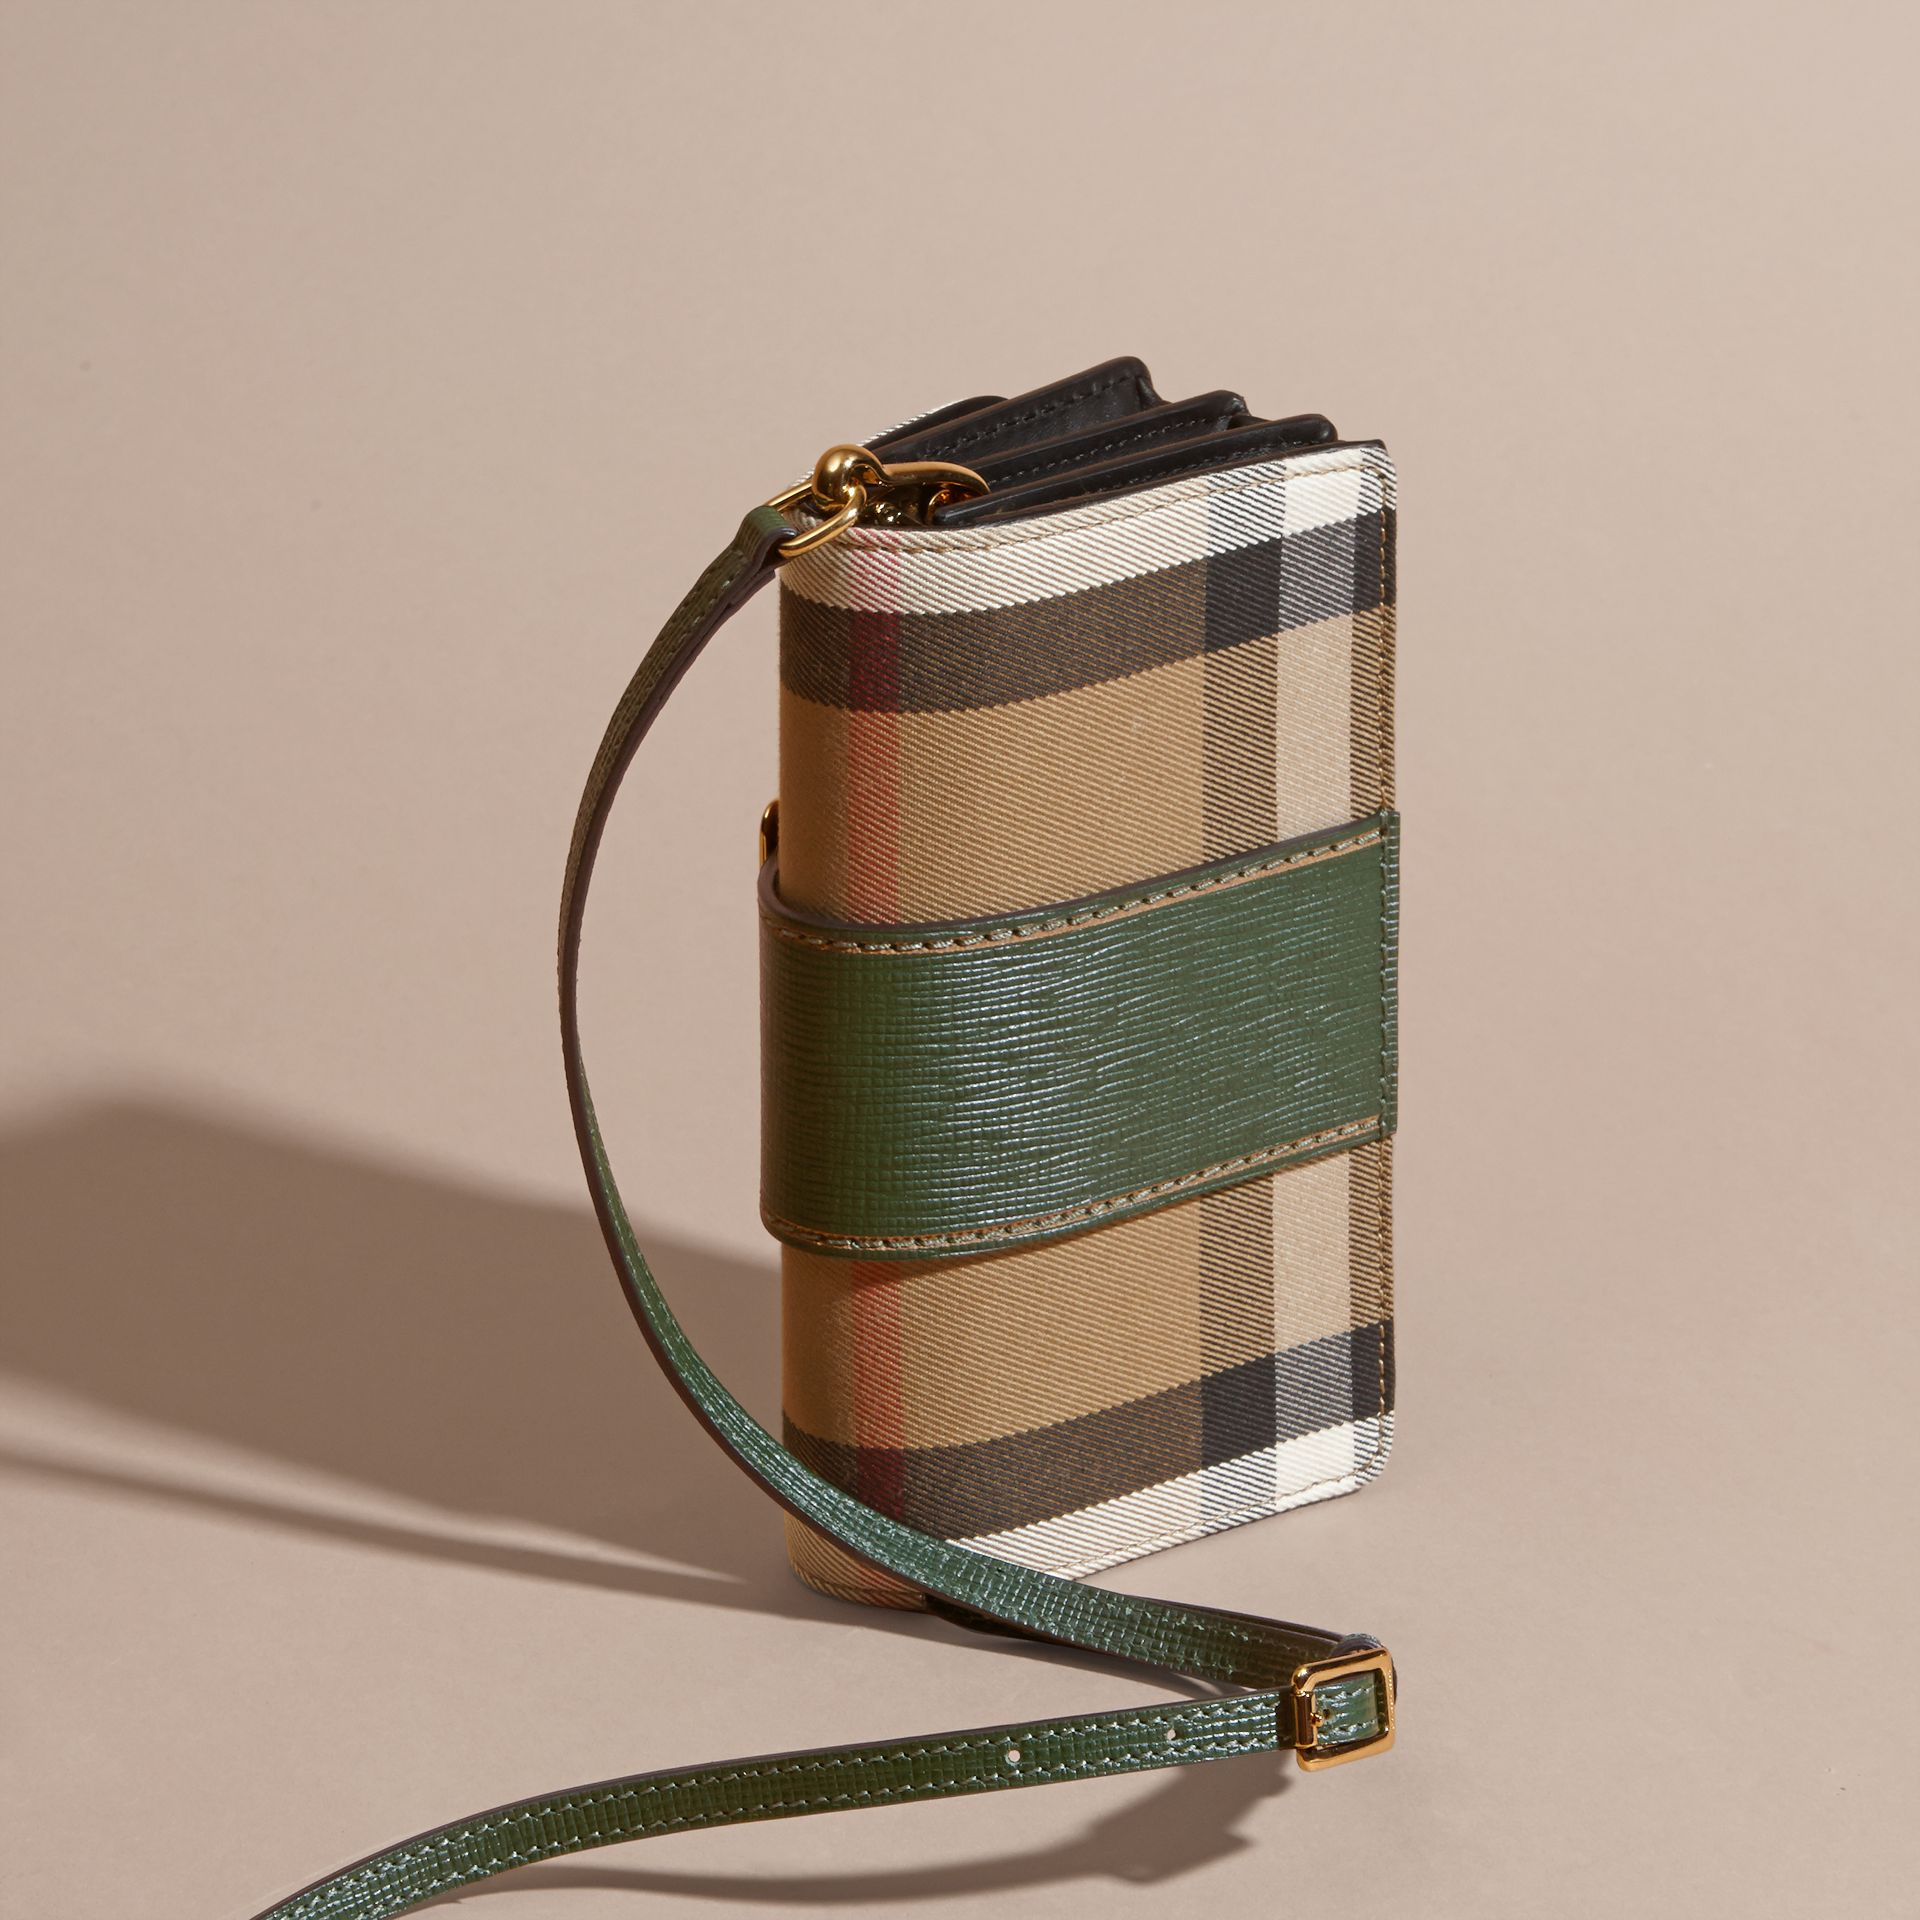 The Small Buckle Bag in House Check and Leather in Kelly Green/kelly Green - Women | Burberry Canada - gallery image 4